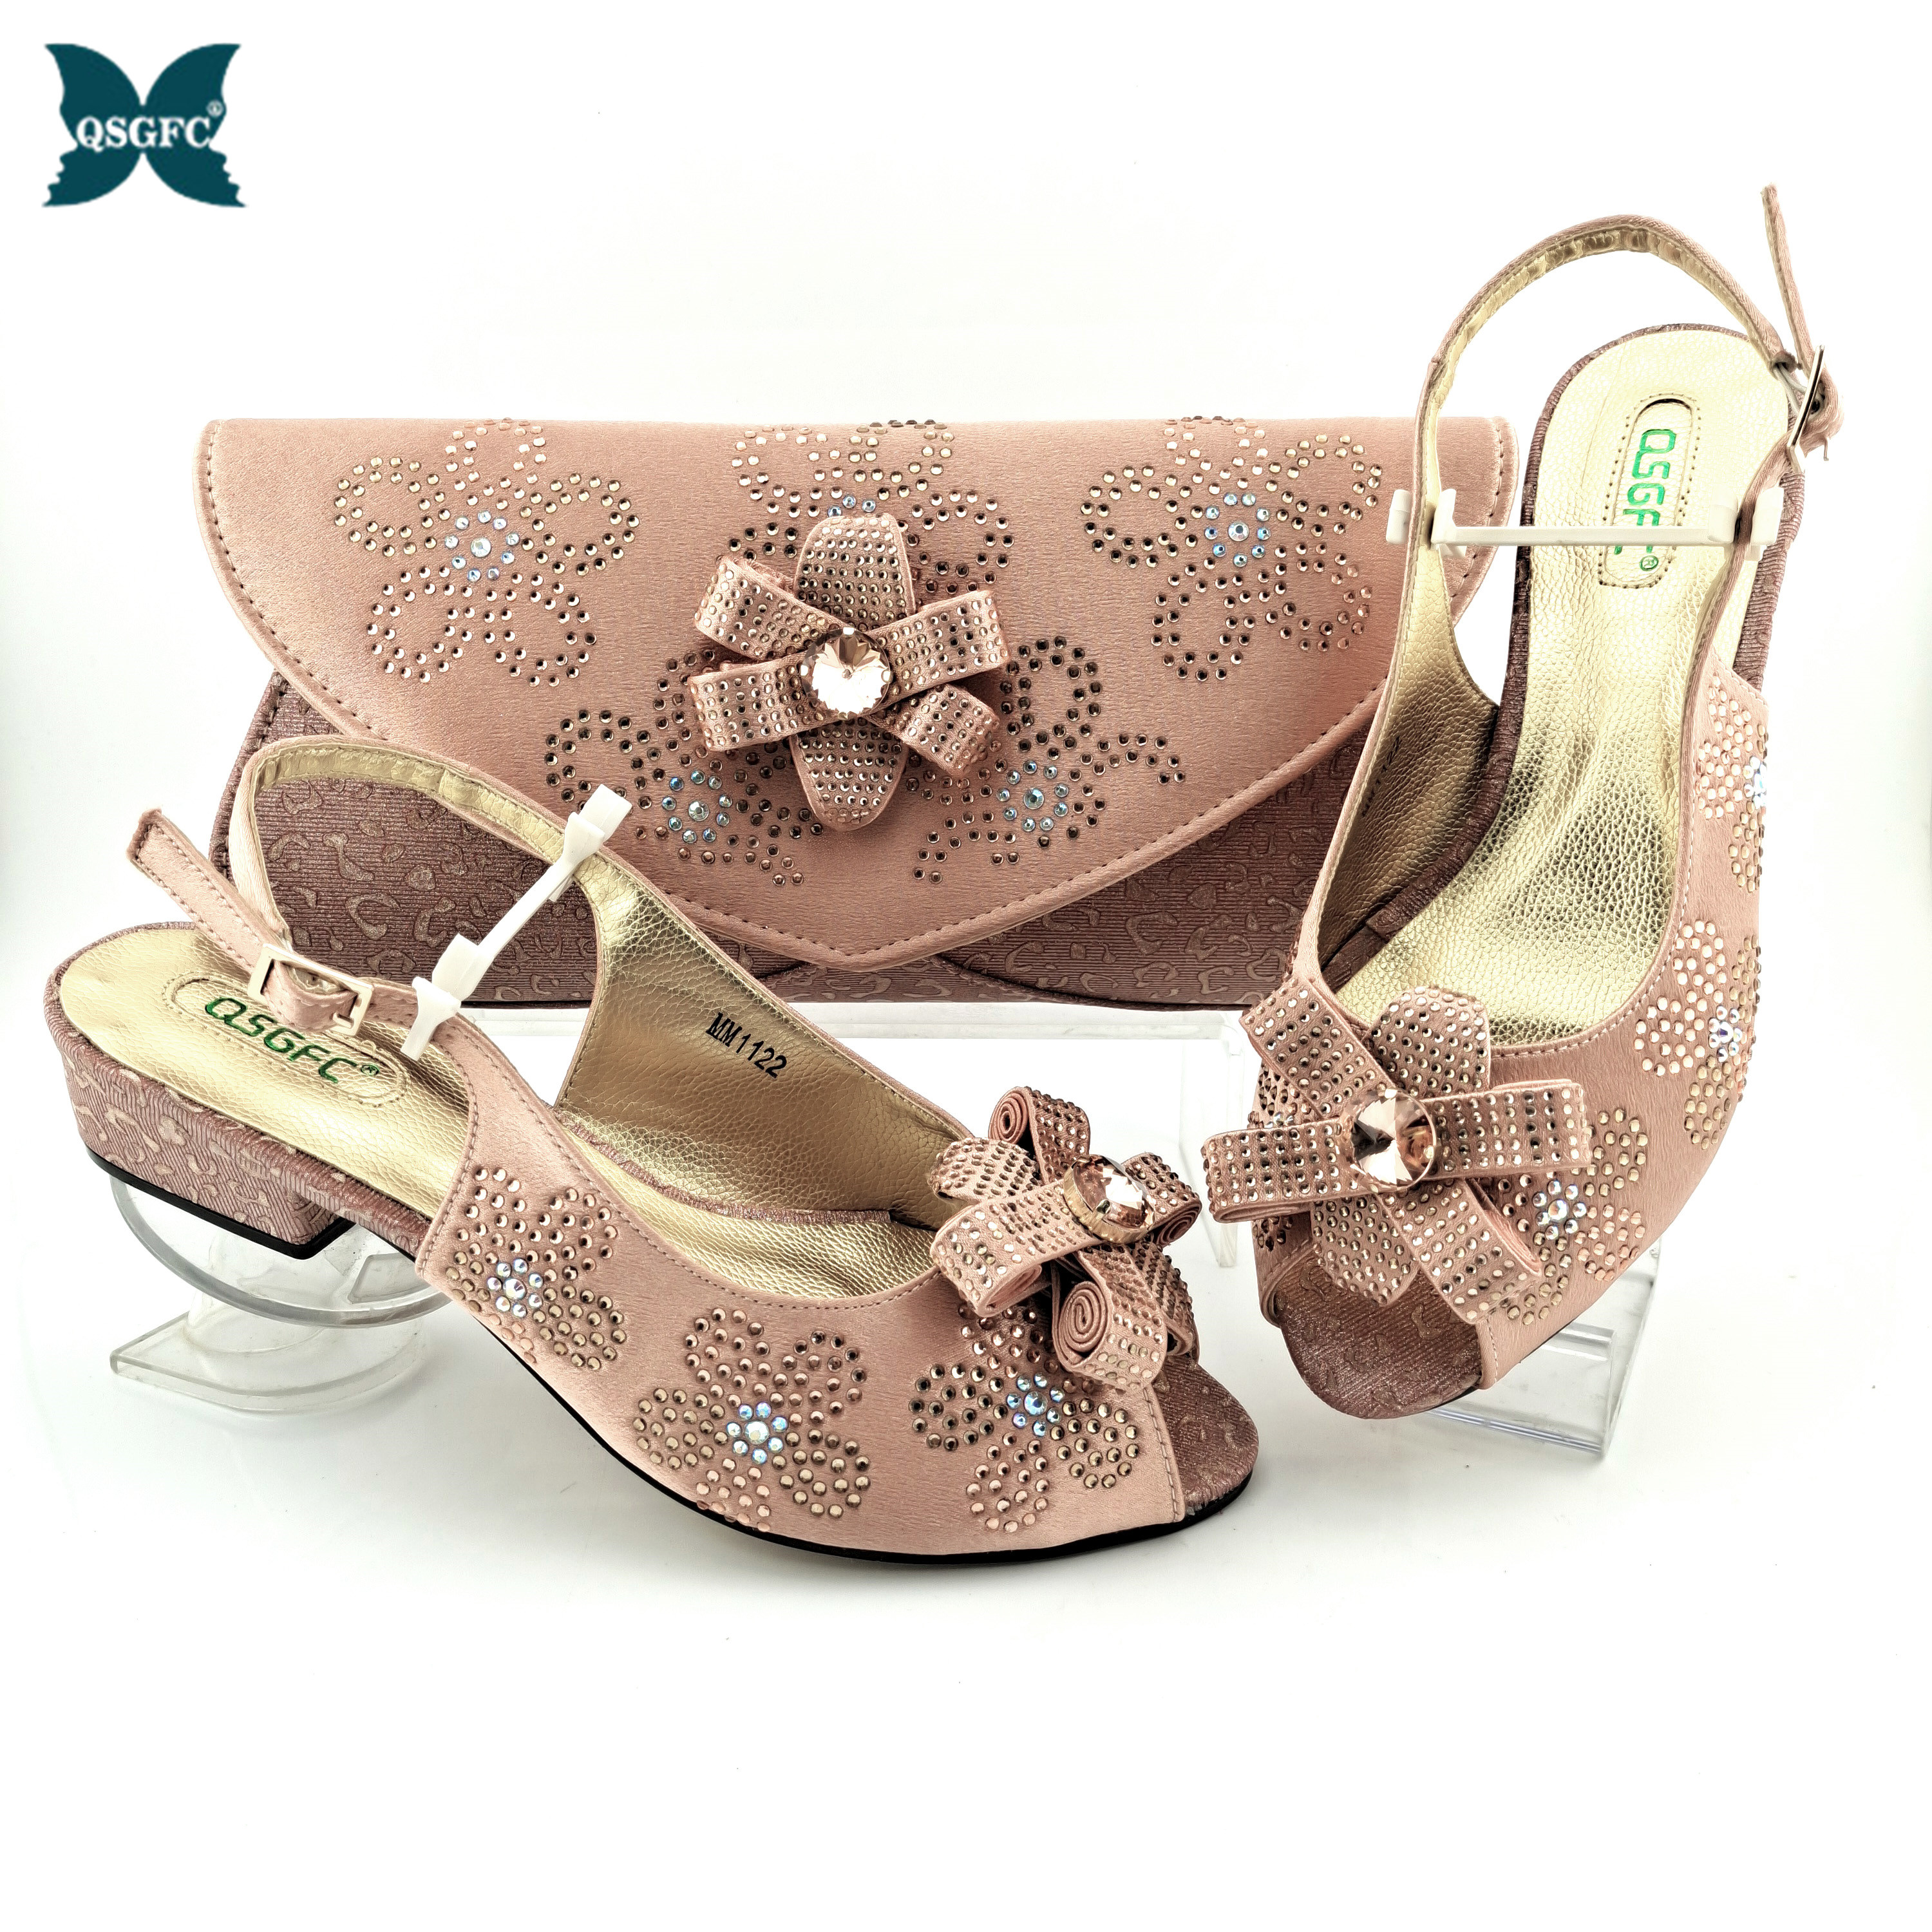 Italian Design 2021 New Arrival Summer African hot Selling Low Heels Ladies Shoes and Bag in Peach Color for Party